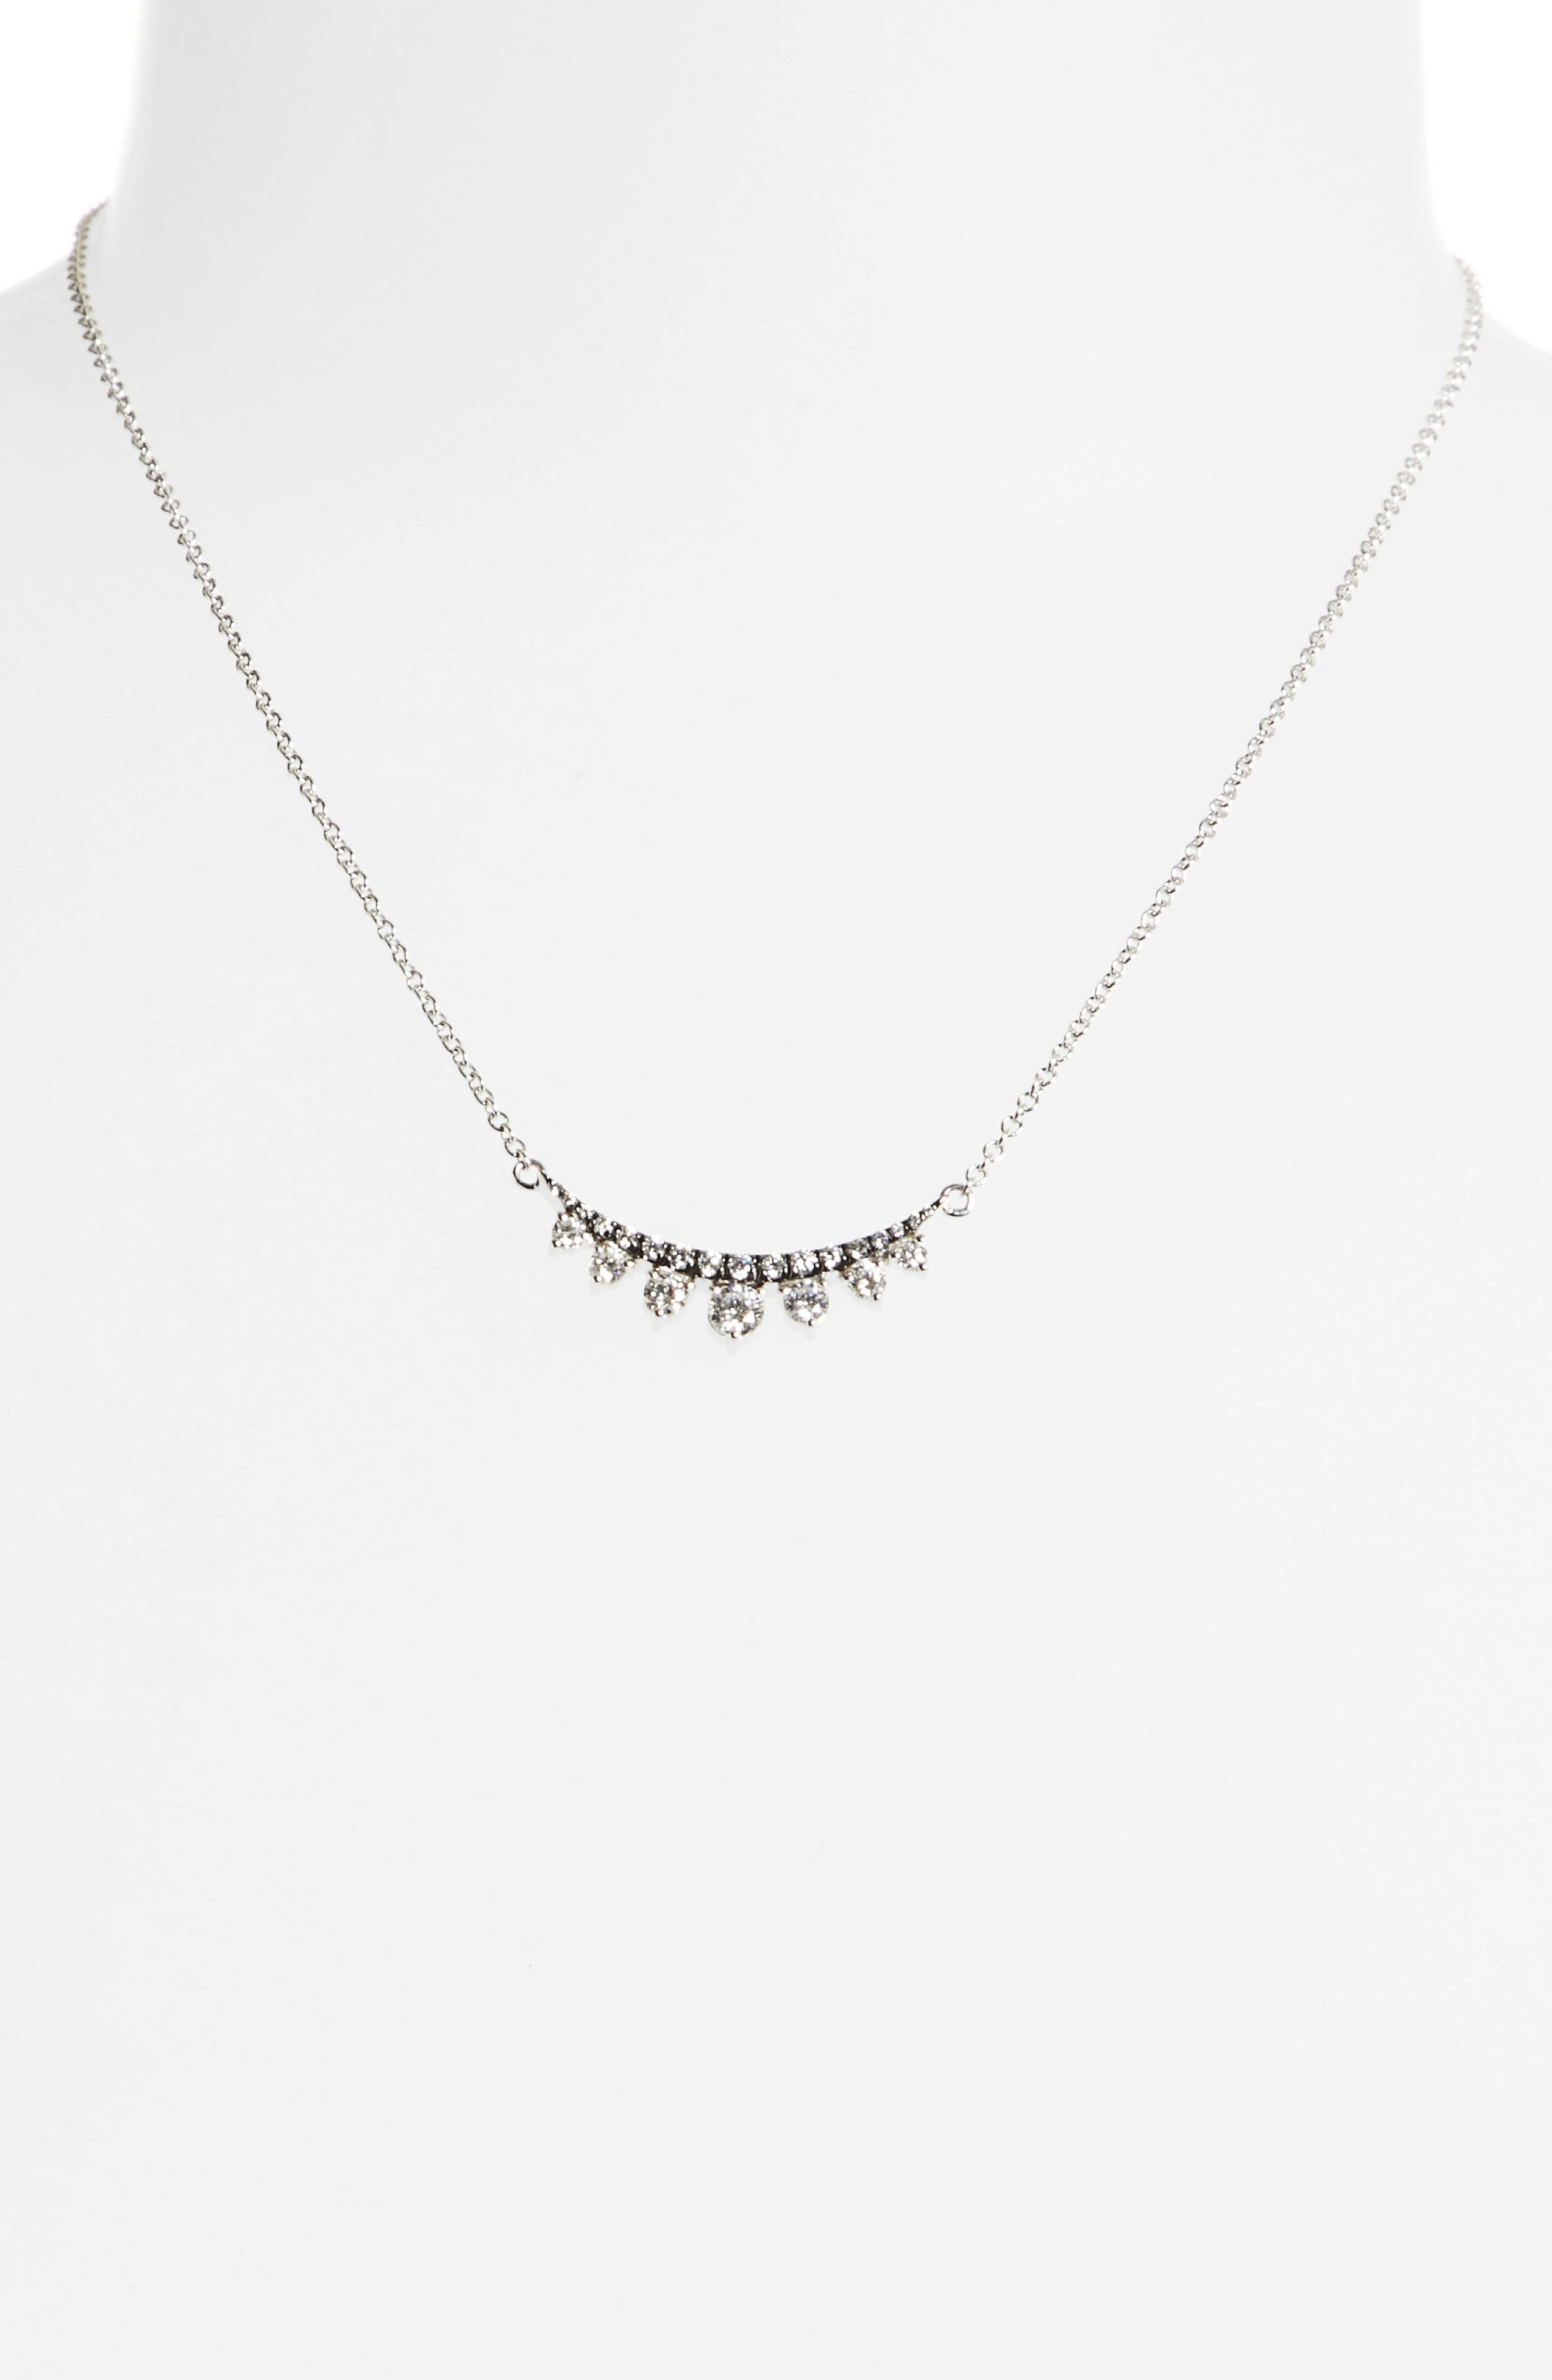 Main Image - Jemma Wynne Prive Luxe 18K White Gold & Diamond Necklace